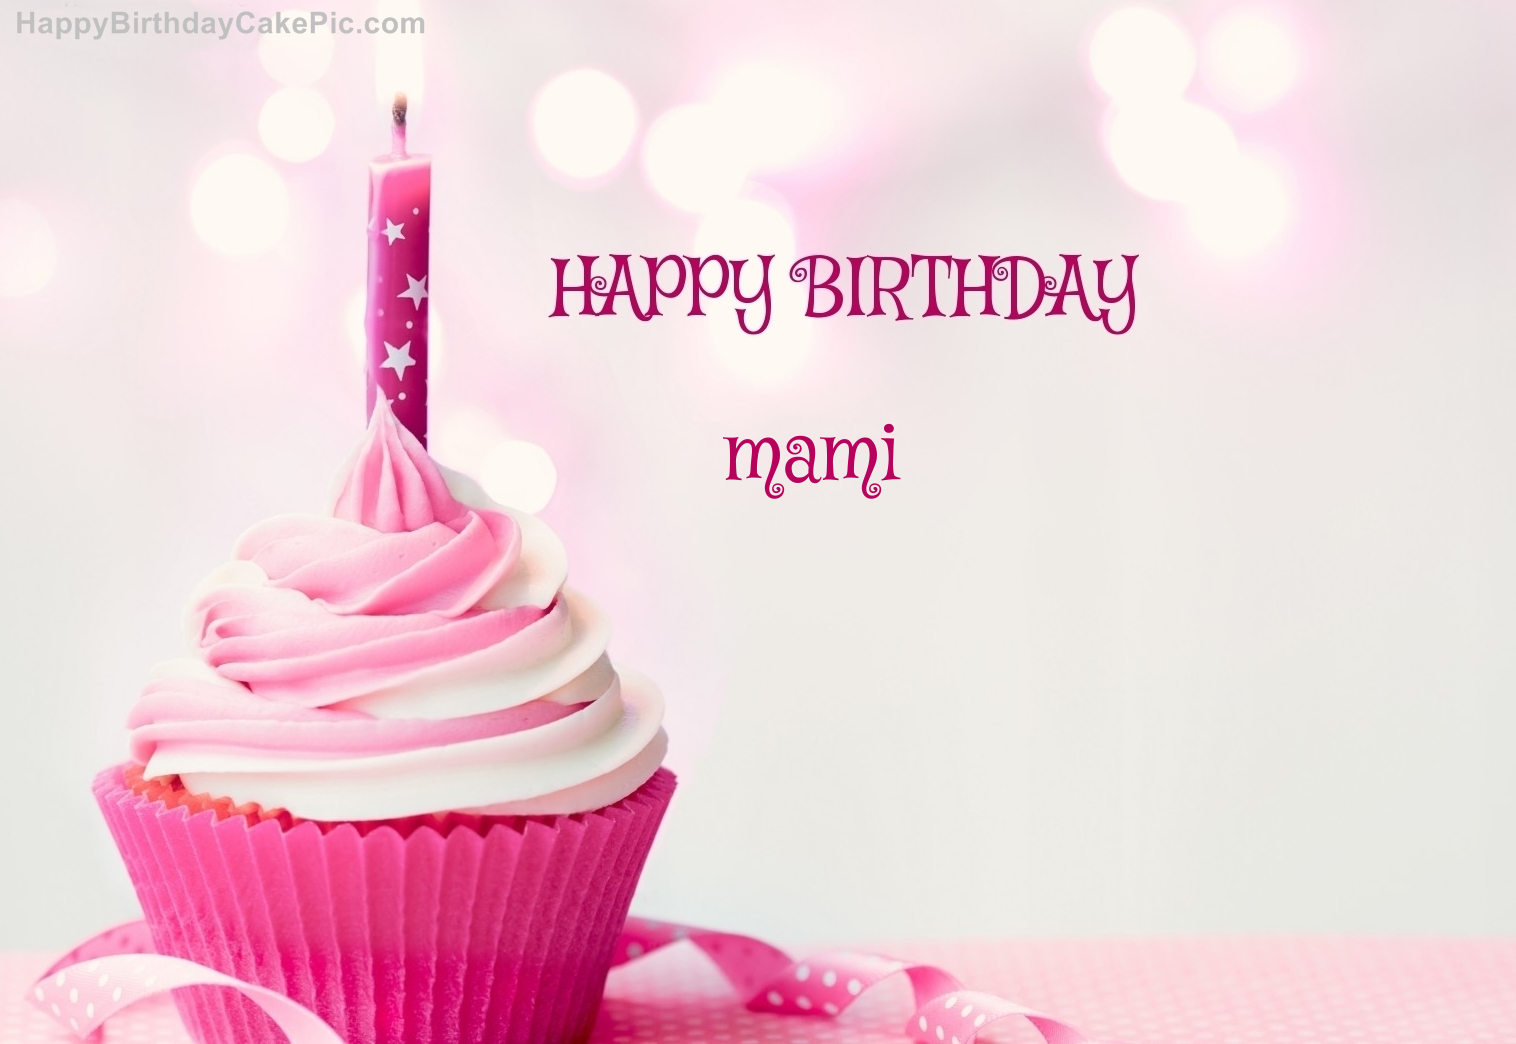 Happy Birthday Cupcake Candle Pink Cake For Mami